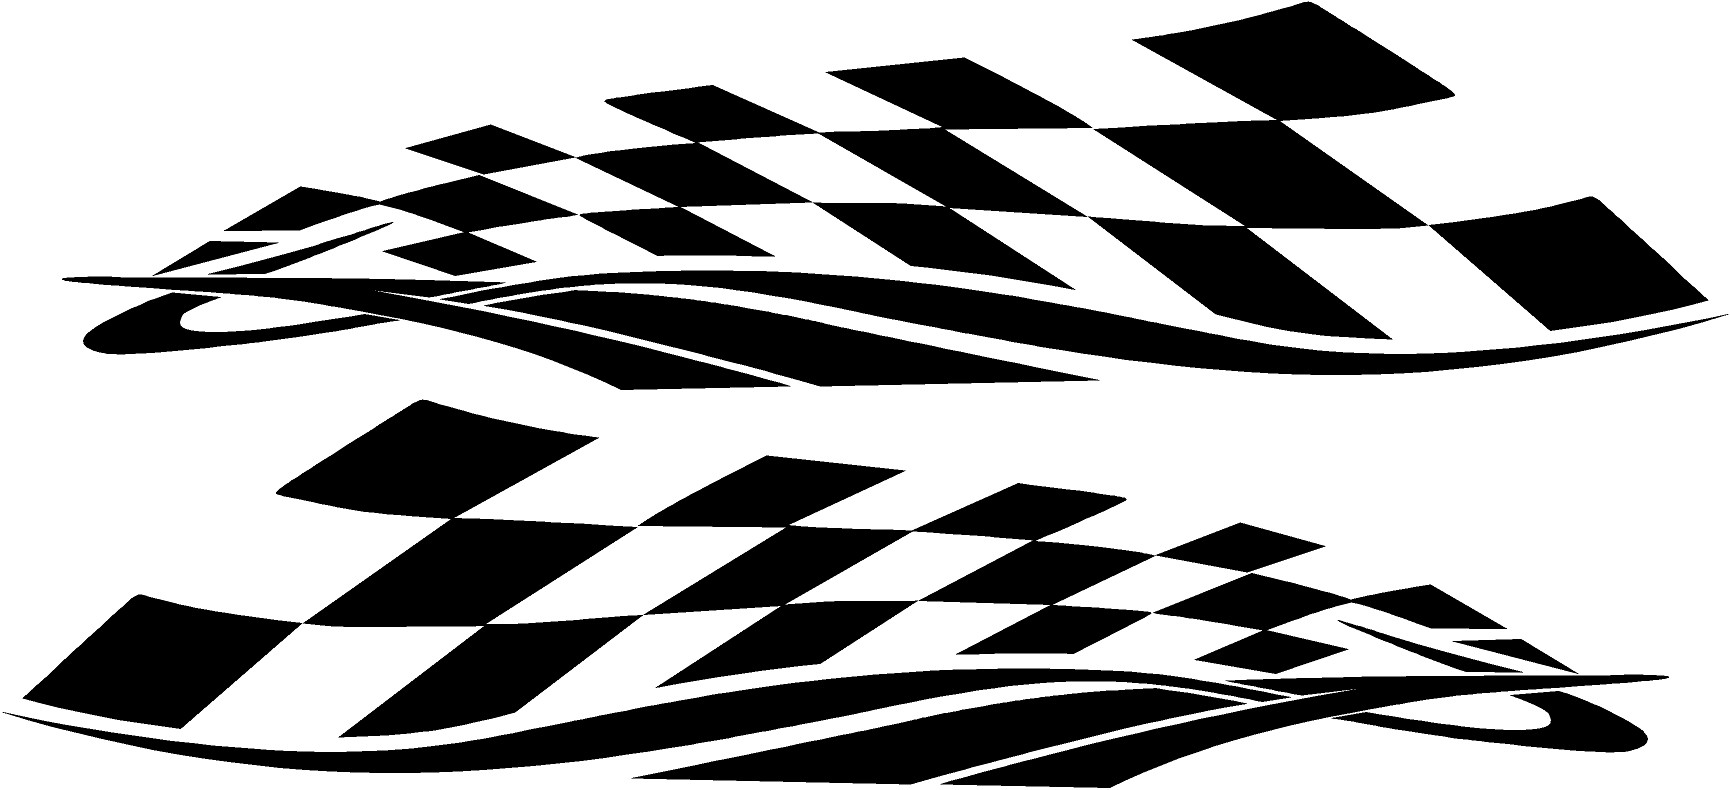 Checkered Flag Vinyl Car Graphics